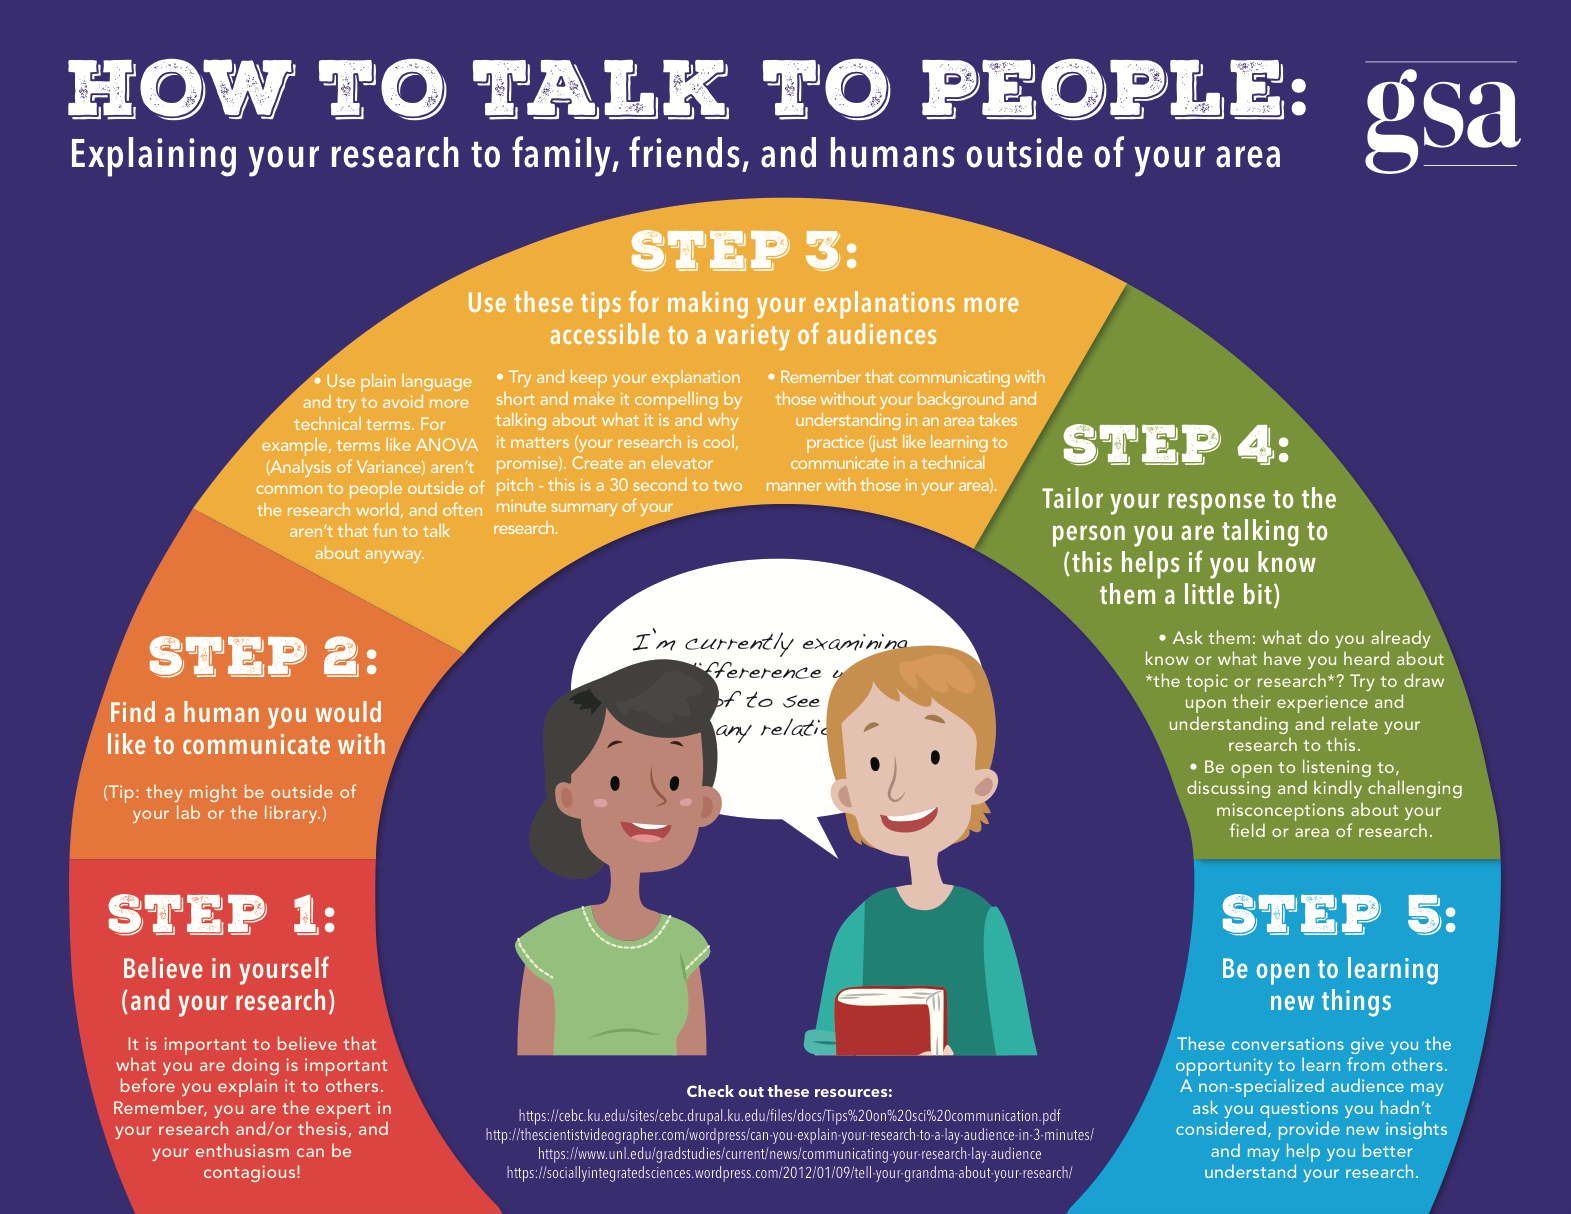 How to talk to people: Explaining your research to family, friends, and humans outside of your area infographic download